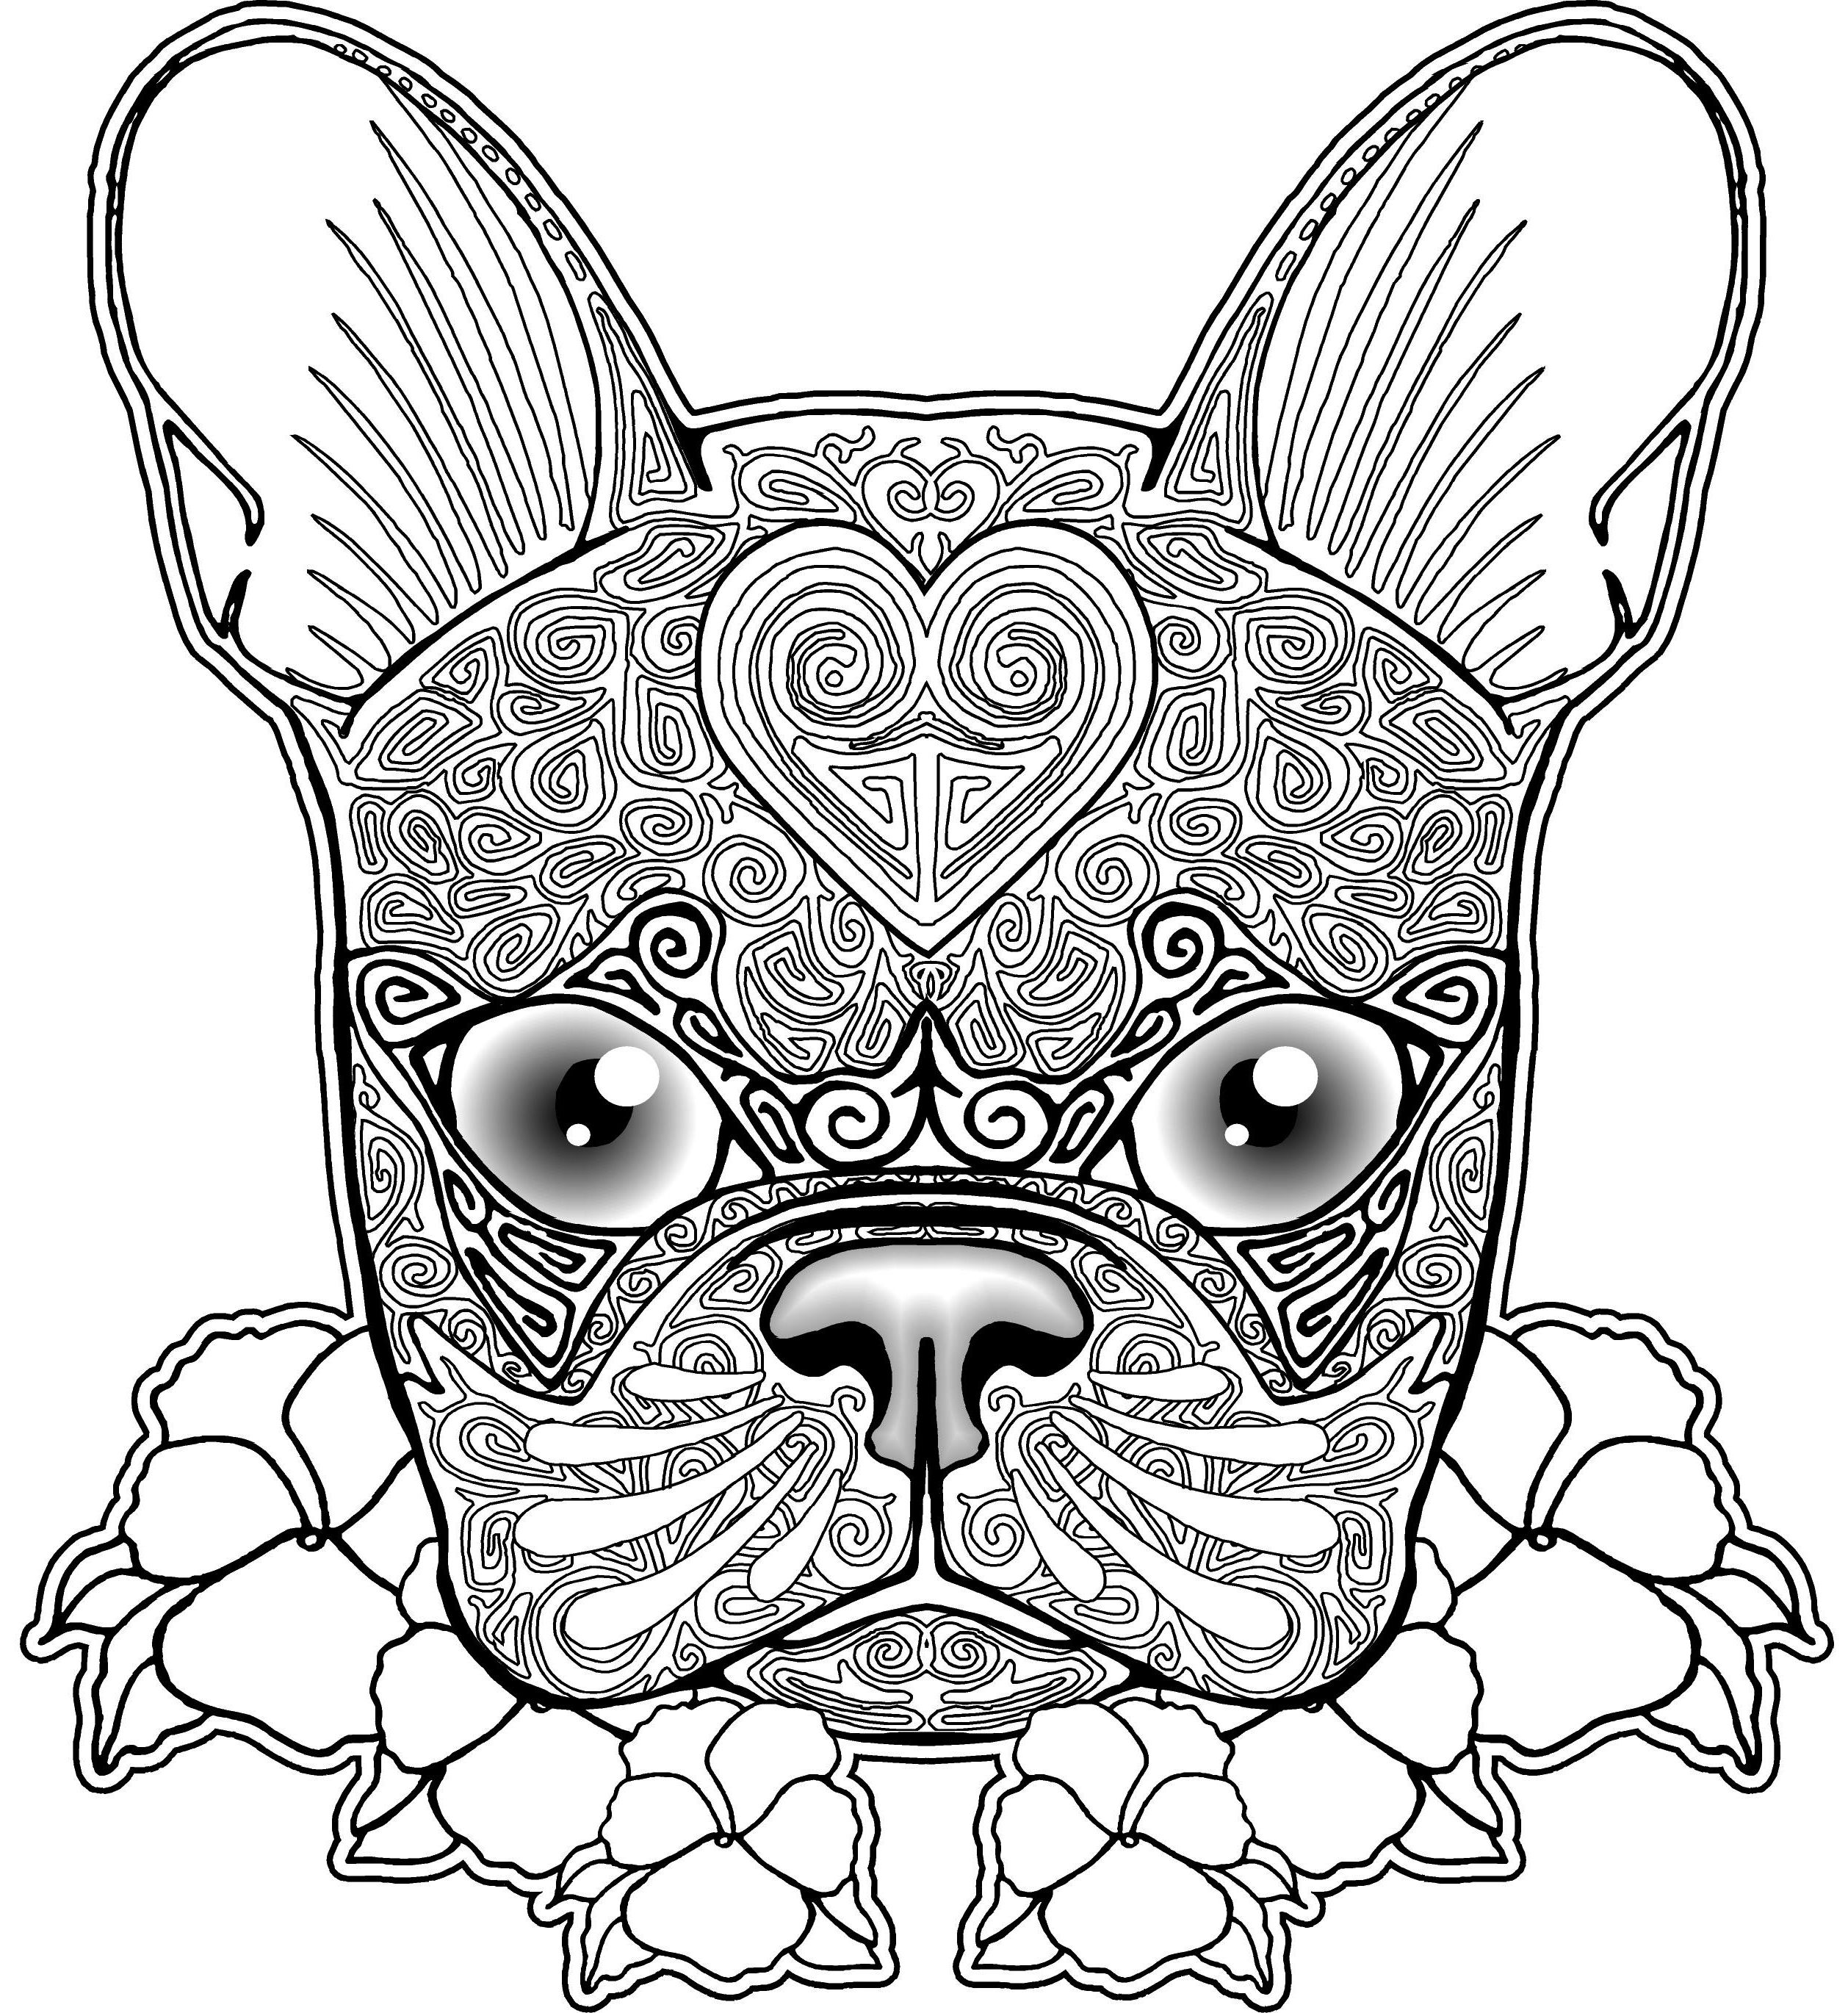 dogs pictures to print pug dog coloring pages coloring home to pictures dogs print